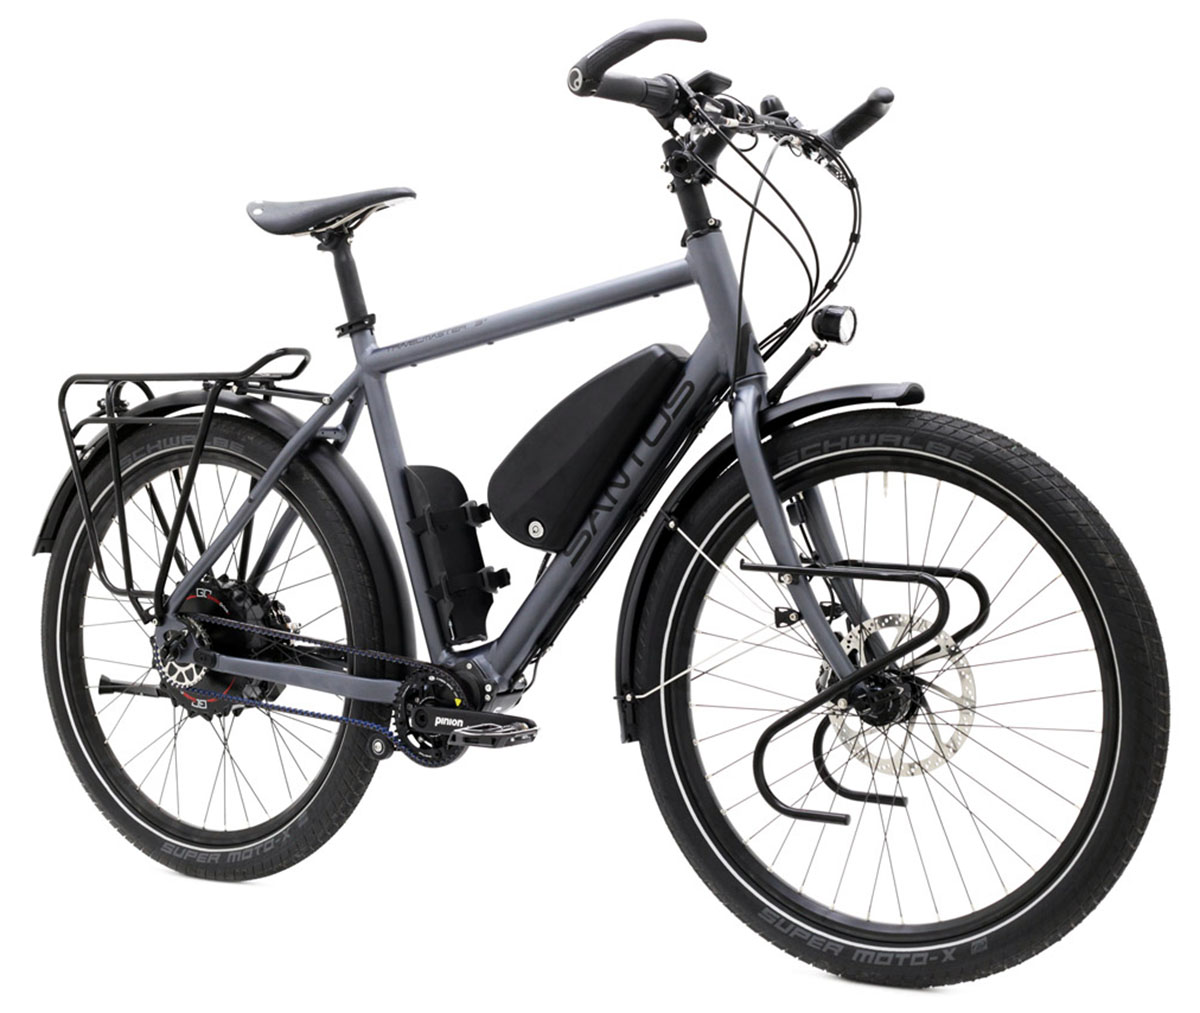 Santos Travelmaster 3 Plus E-bike